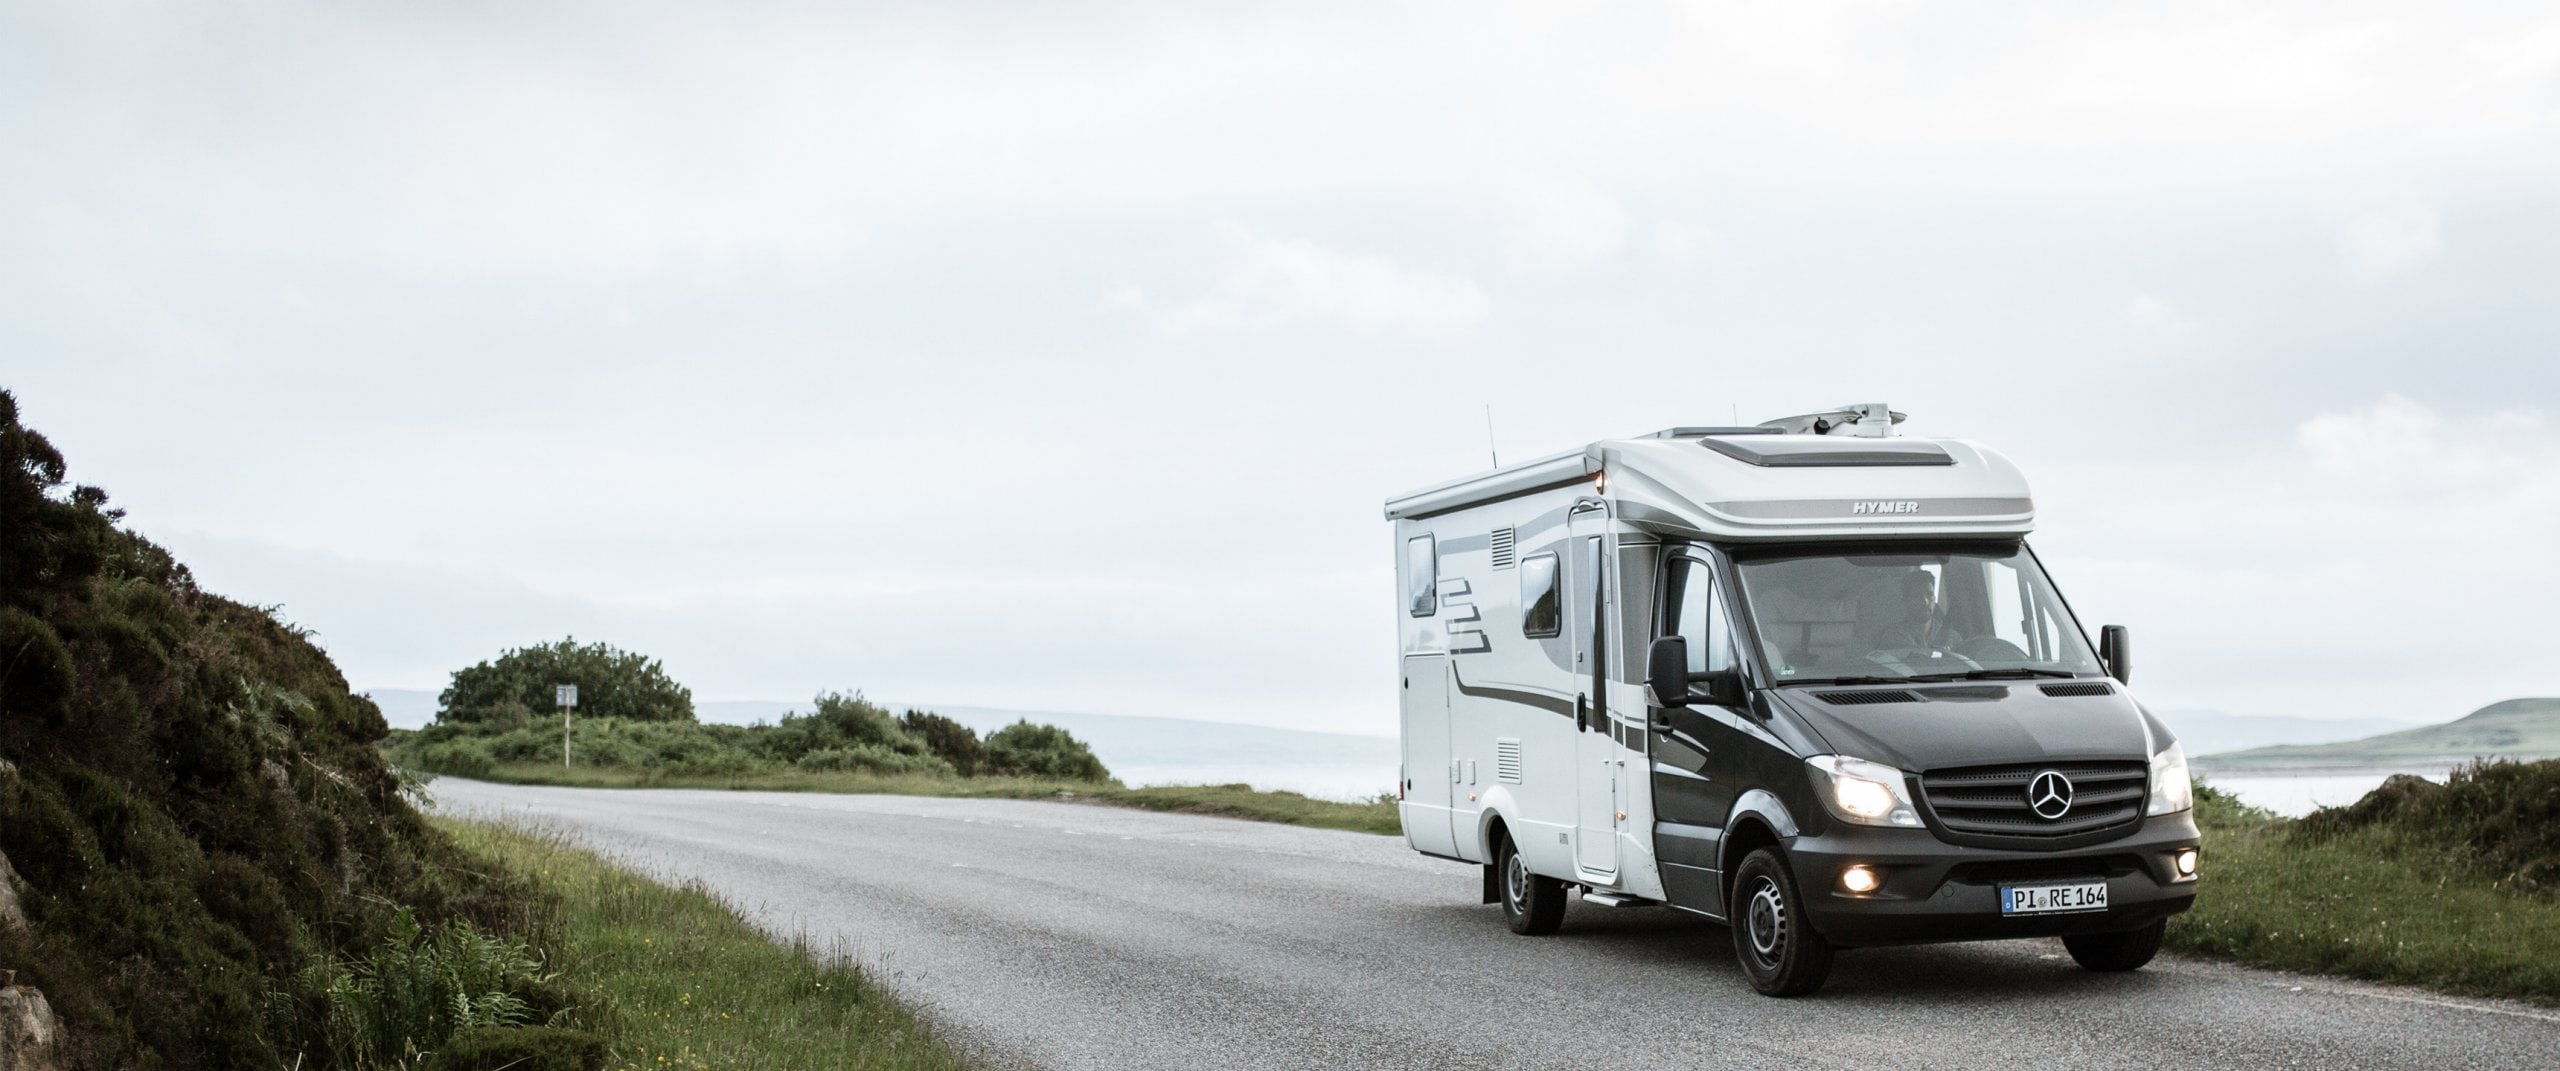 The Hymer motorhome with the Sprinter chassis drives through Scotland´s hilly landscape while dawn is approaching.